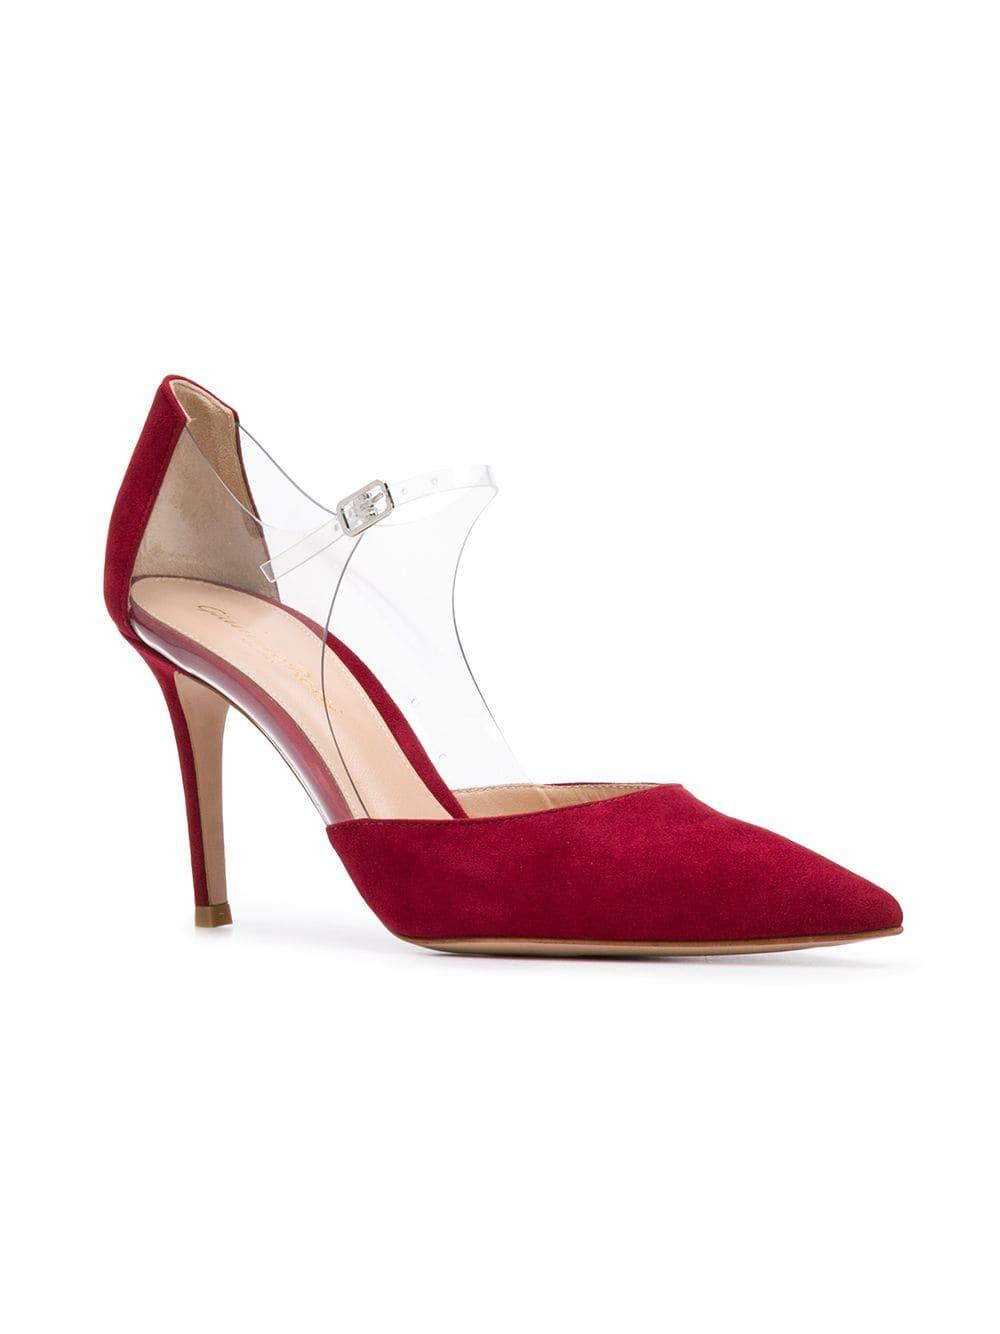 d75cf4c6752d Lyst - Gianvito Rossi Plexi 85 Pumps in Red